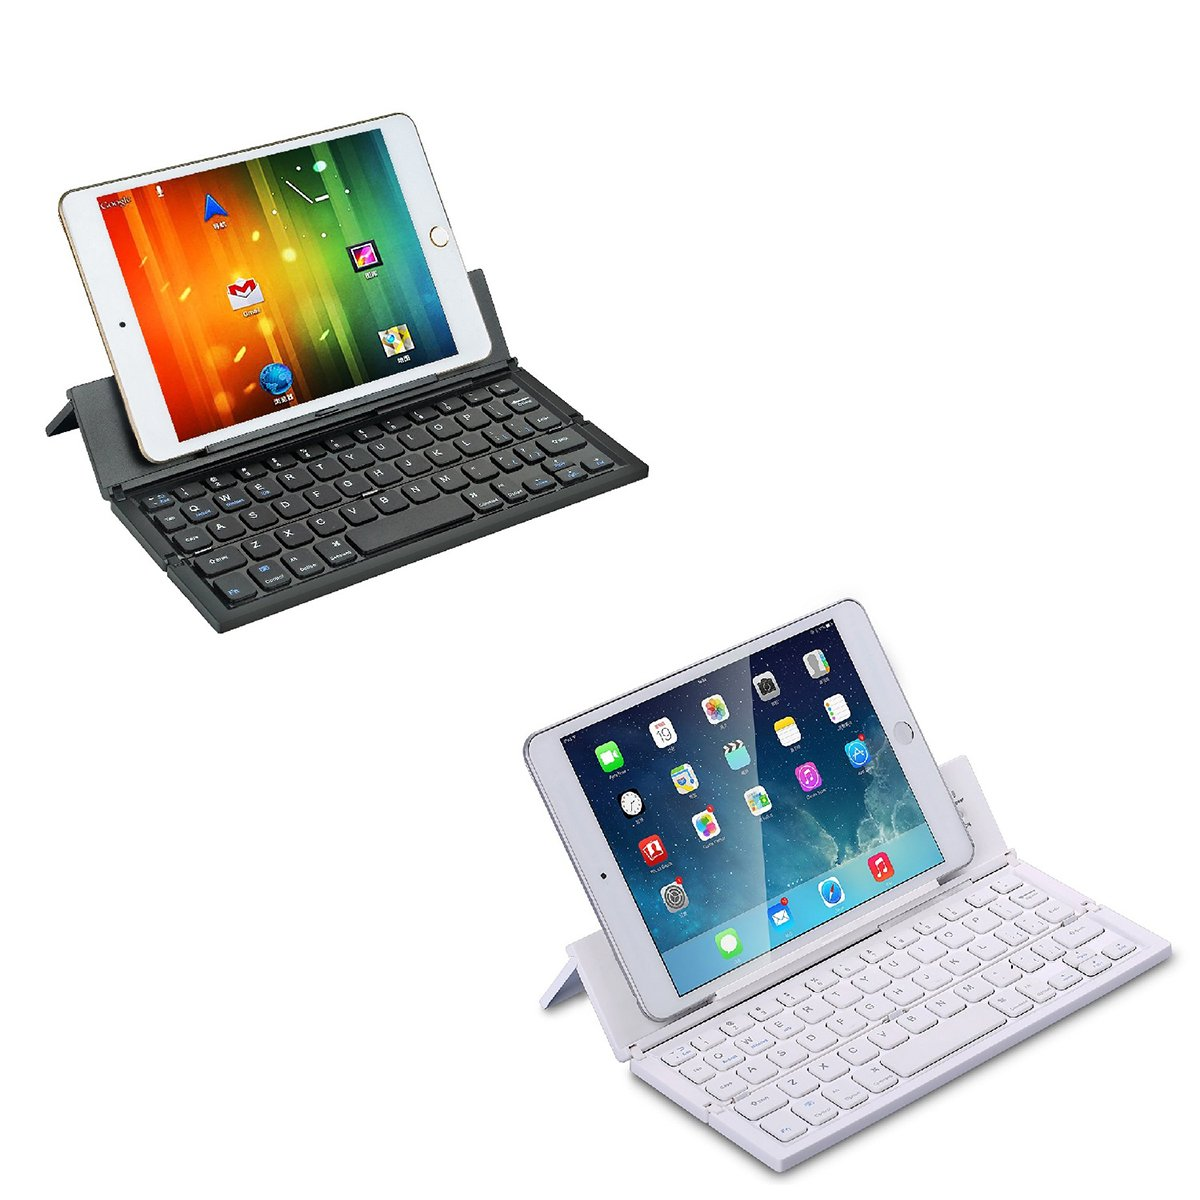 LEANINGTECH Portable Foldable Bluetooth Keyboard Aluminum Metal Collapsible Keypad with Kickstand Holder Phone Holder for iPhone, iPad, Samsung, Android, Windows Device-Black by LEANINGTECH (Image #8)